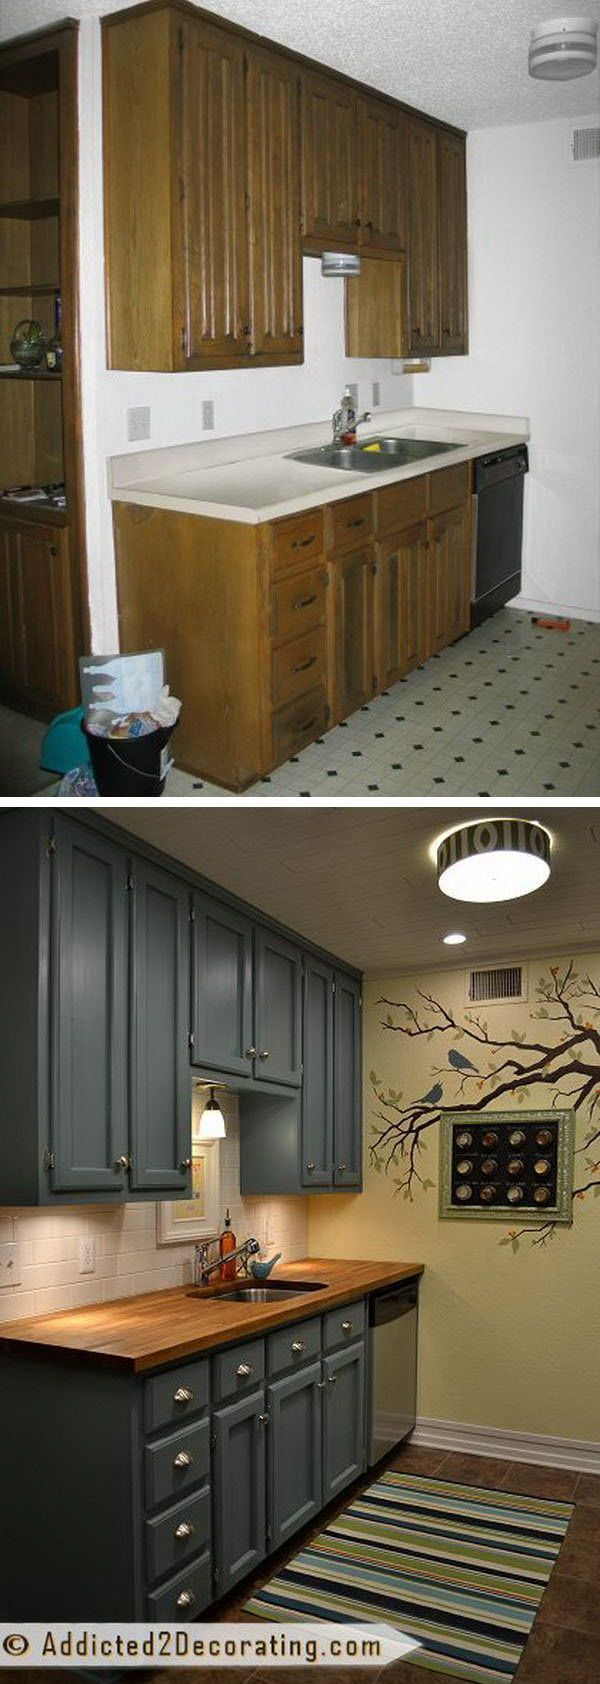 Ideas For Kitchen Cabinets Makeover best 25+ cabinet door makeover ideas on pinterest | updating